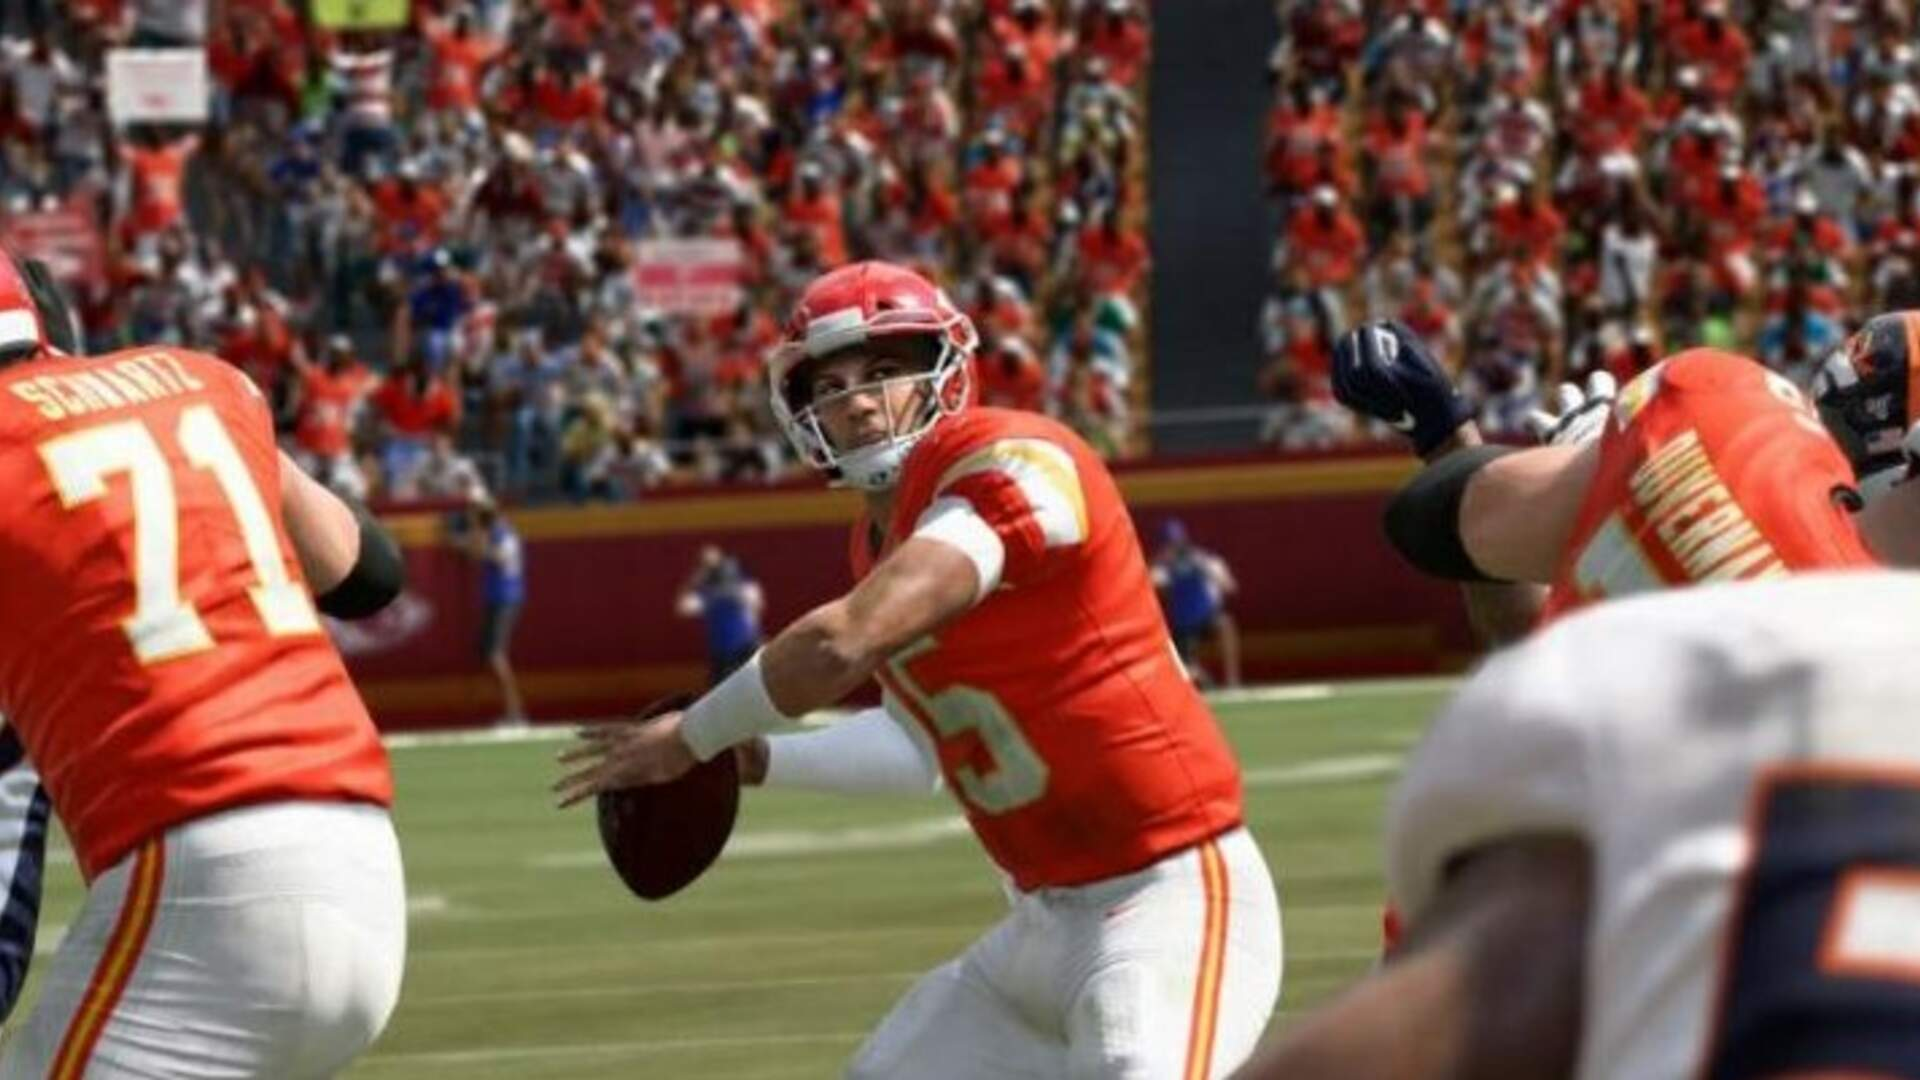 New Madden 20 Gameplay Features, Superstar X-Factors Players Detailed